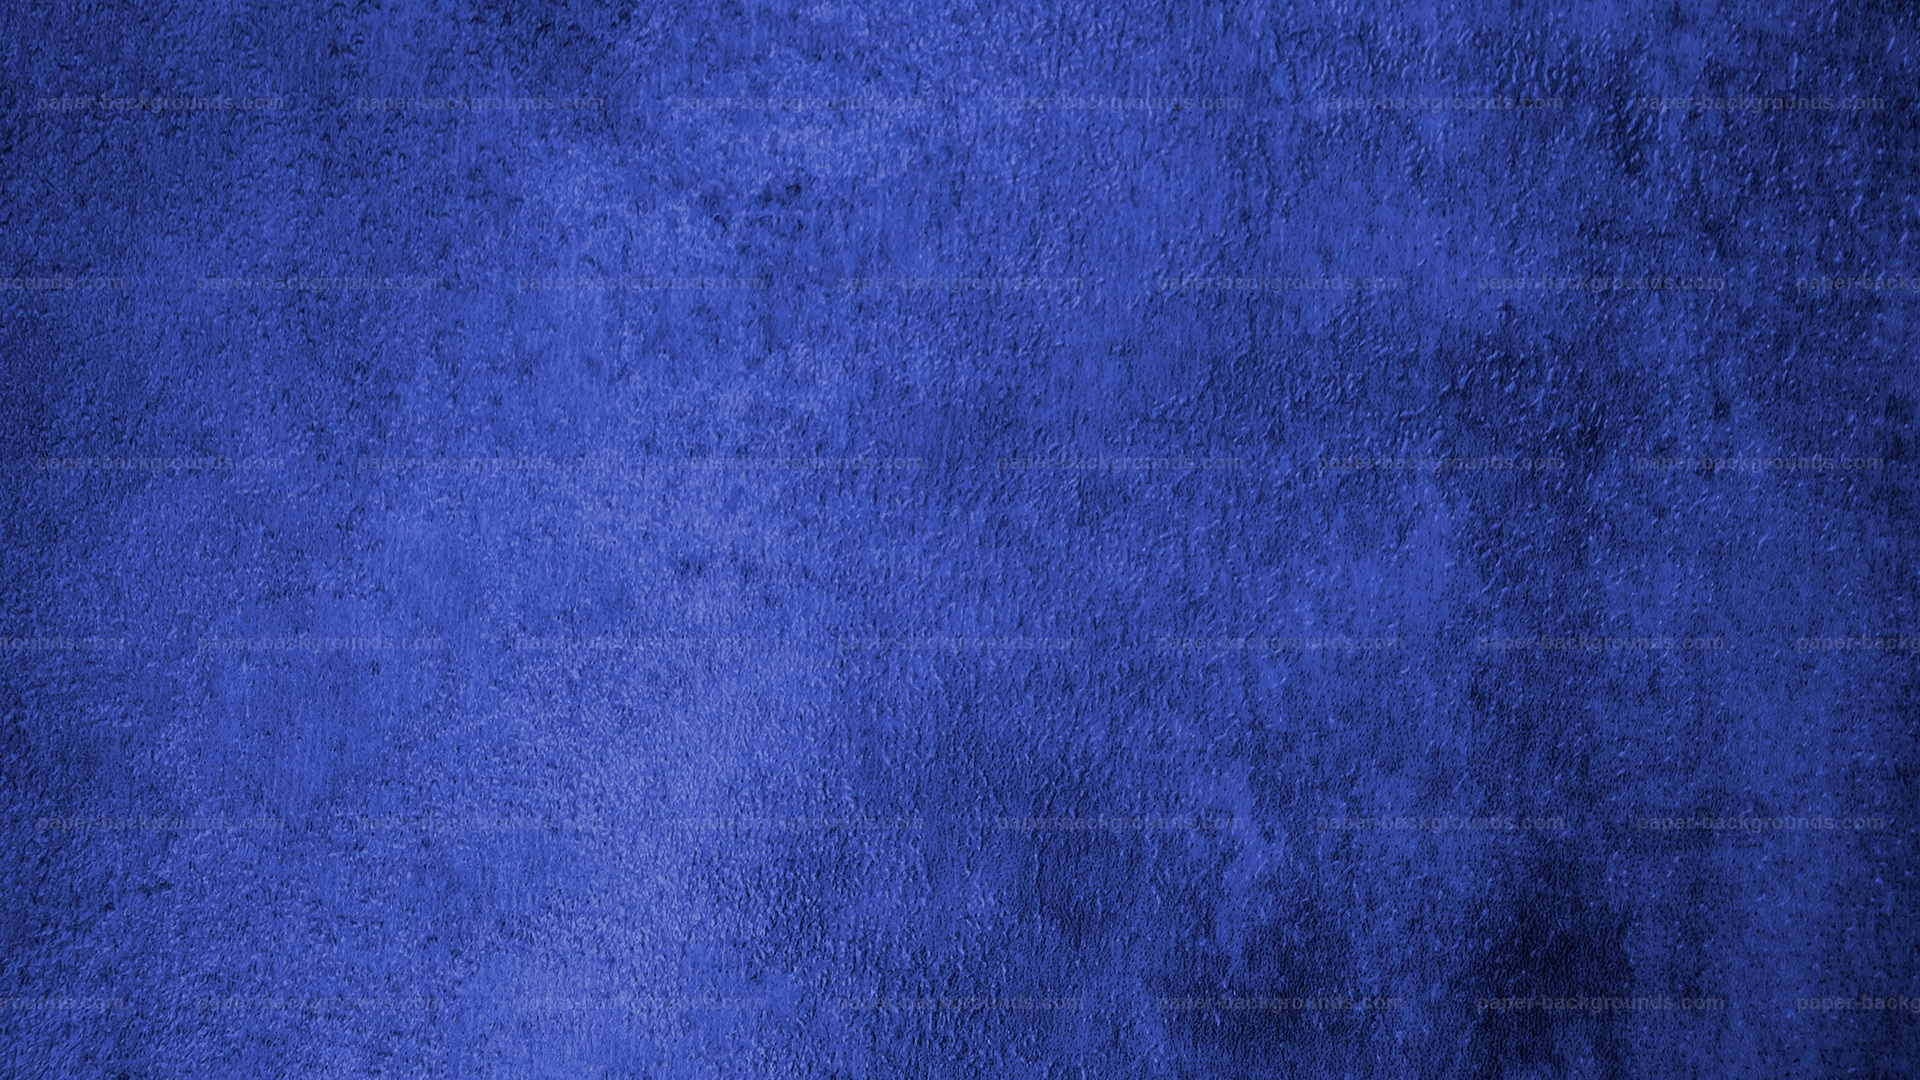 Blue Grunge Background Texture HD